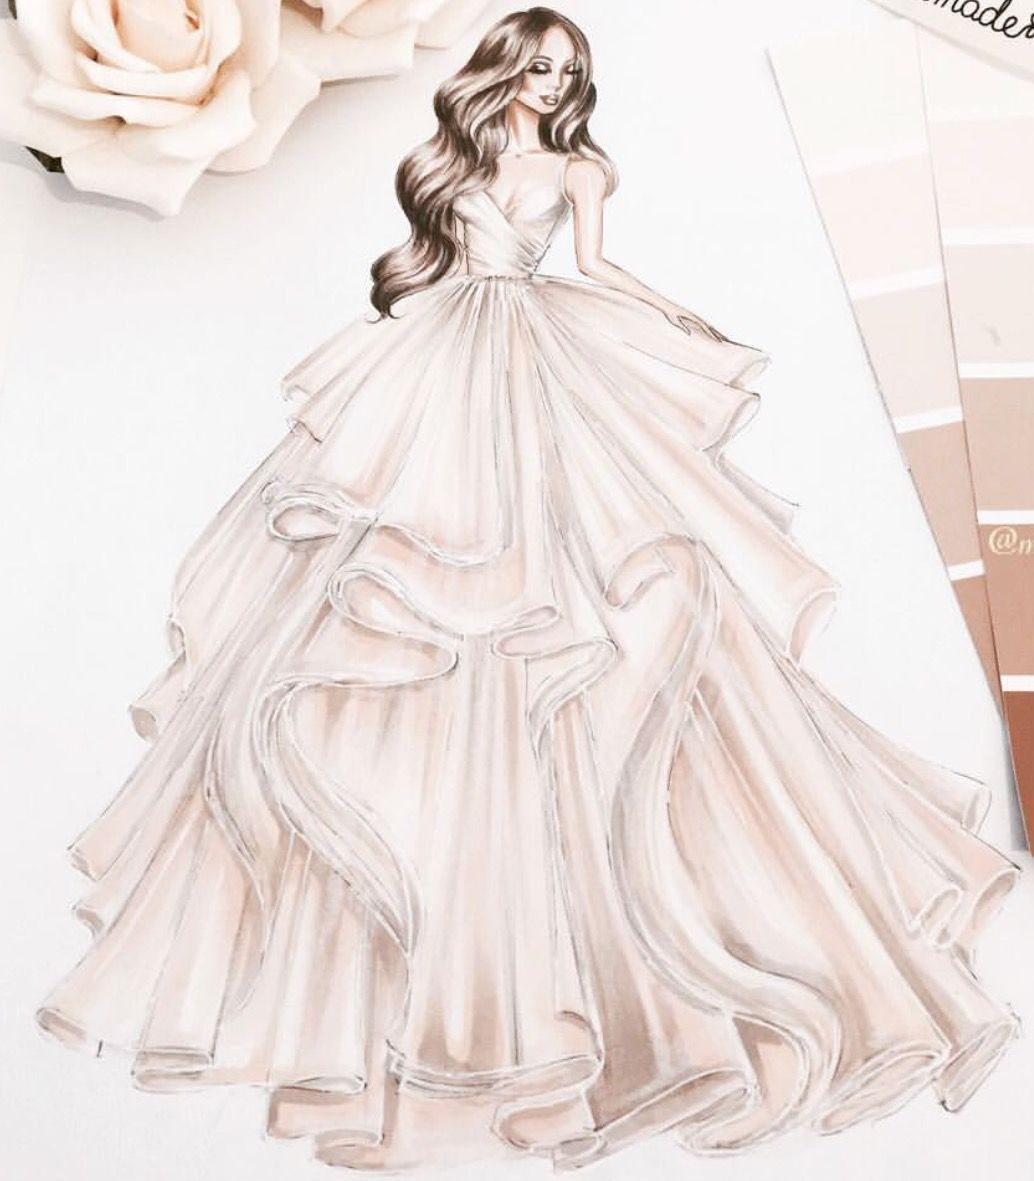 2017 Champagne Wishes Miss Victoria25 Be Inspirational Mz Manerz Being Mz Manerz In 2020 Fashion Drawing Dresses Fashion Sketches Dresses Dress Sketches